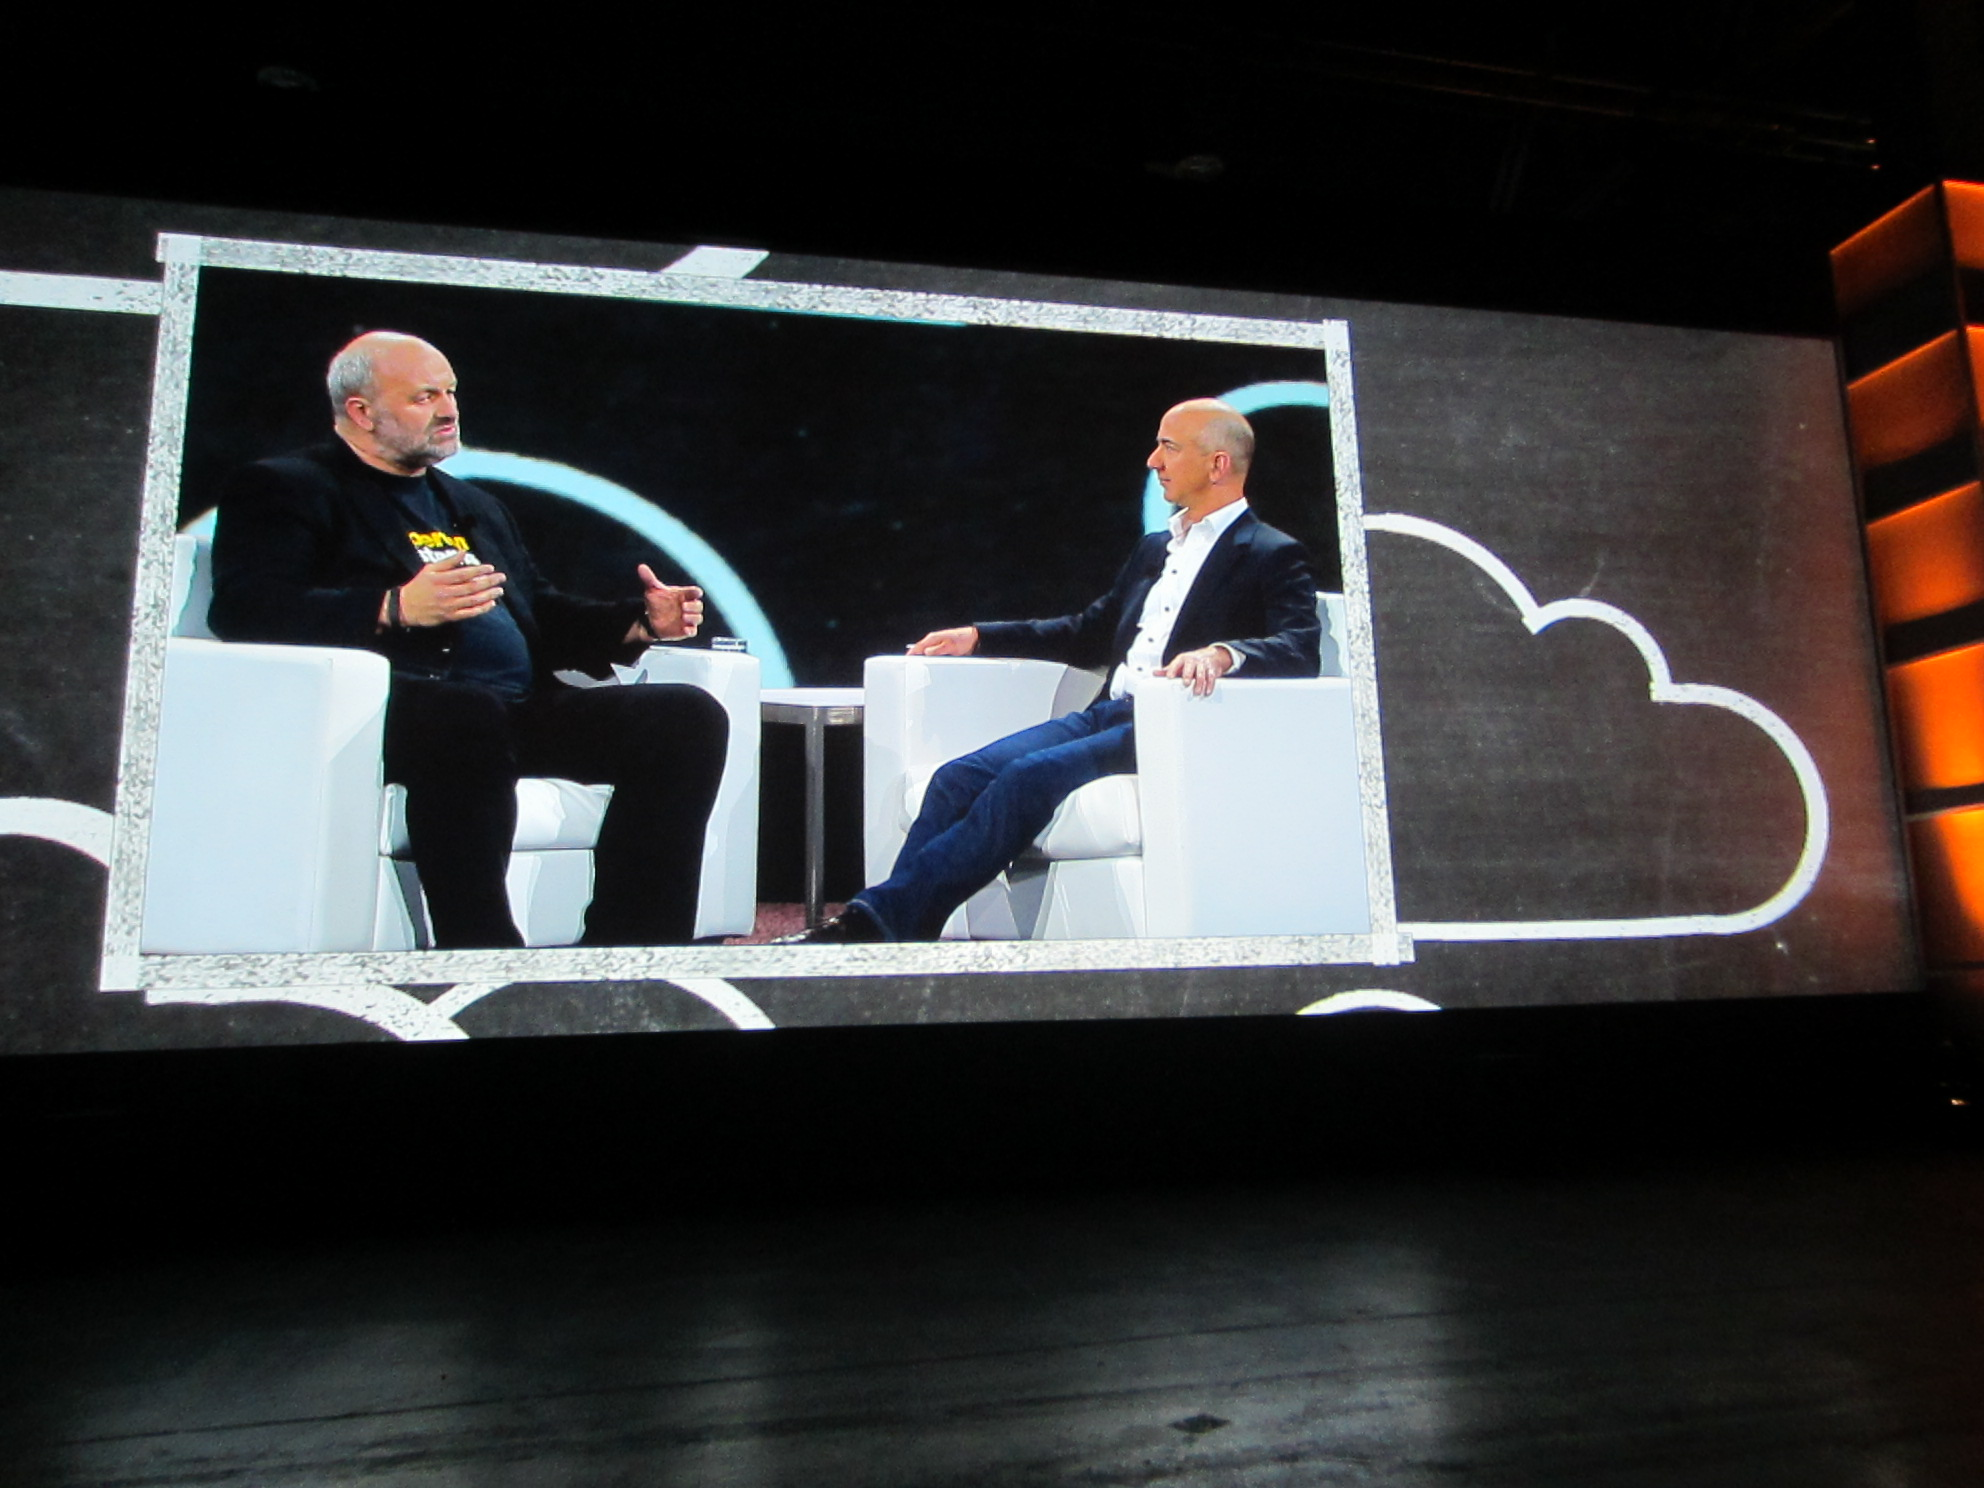 Amazon CTO Werner Vogels and CEO Jeff Bezos on stage at AWS: Reinvent